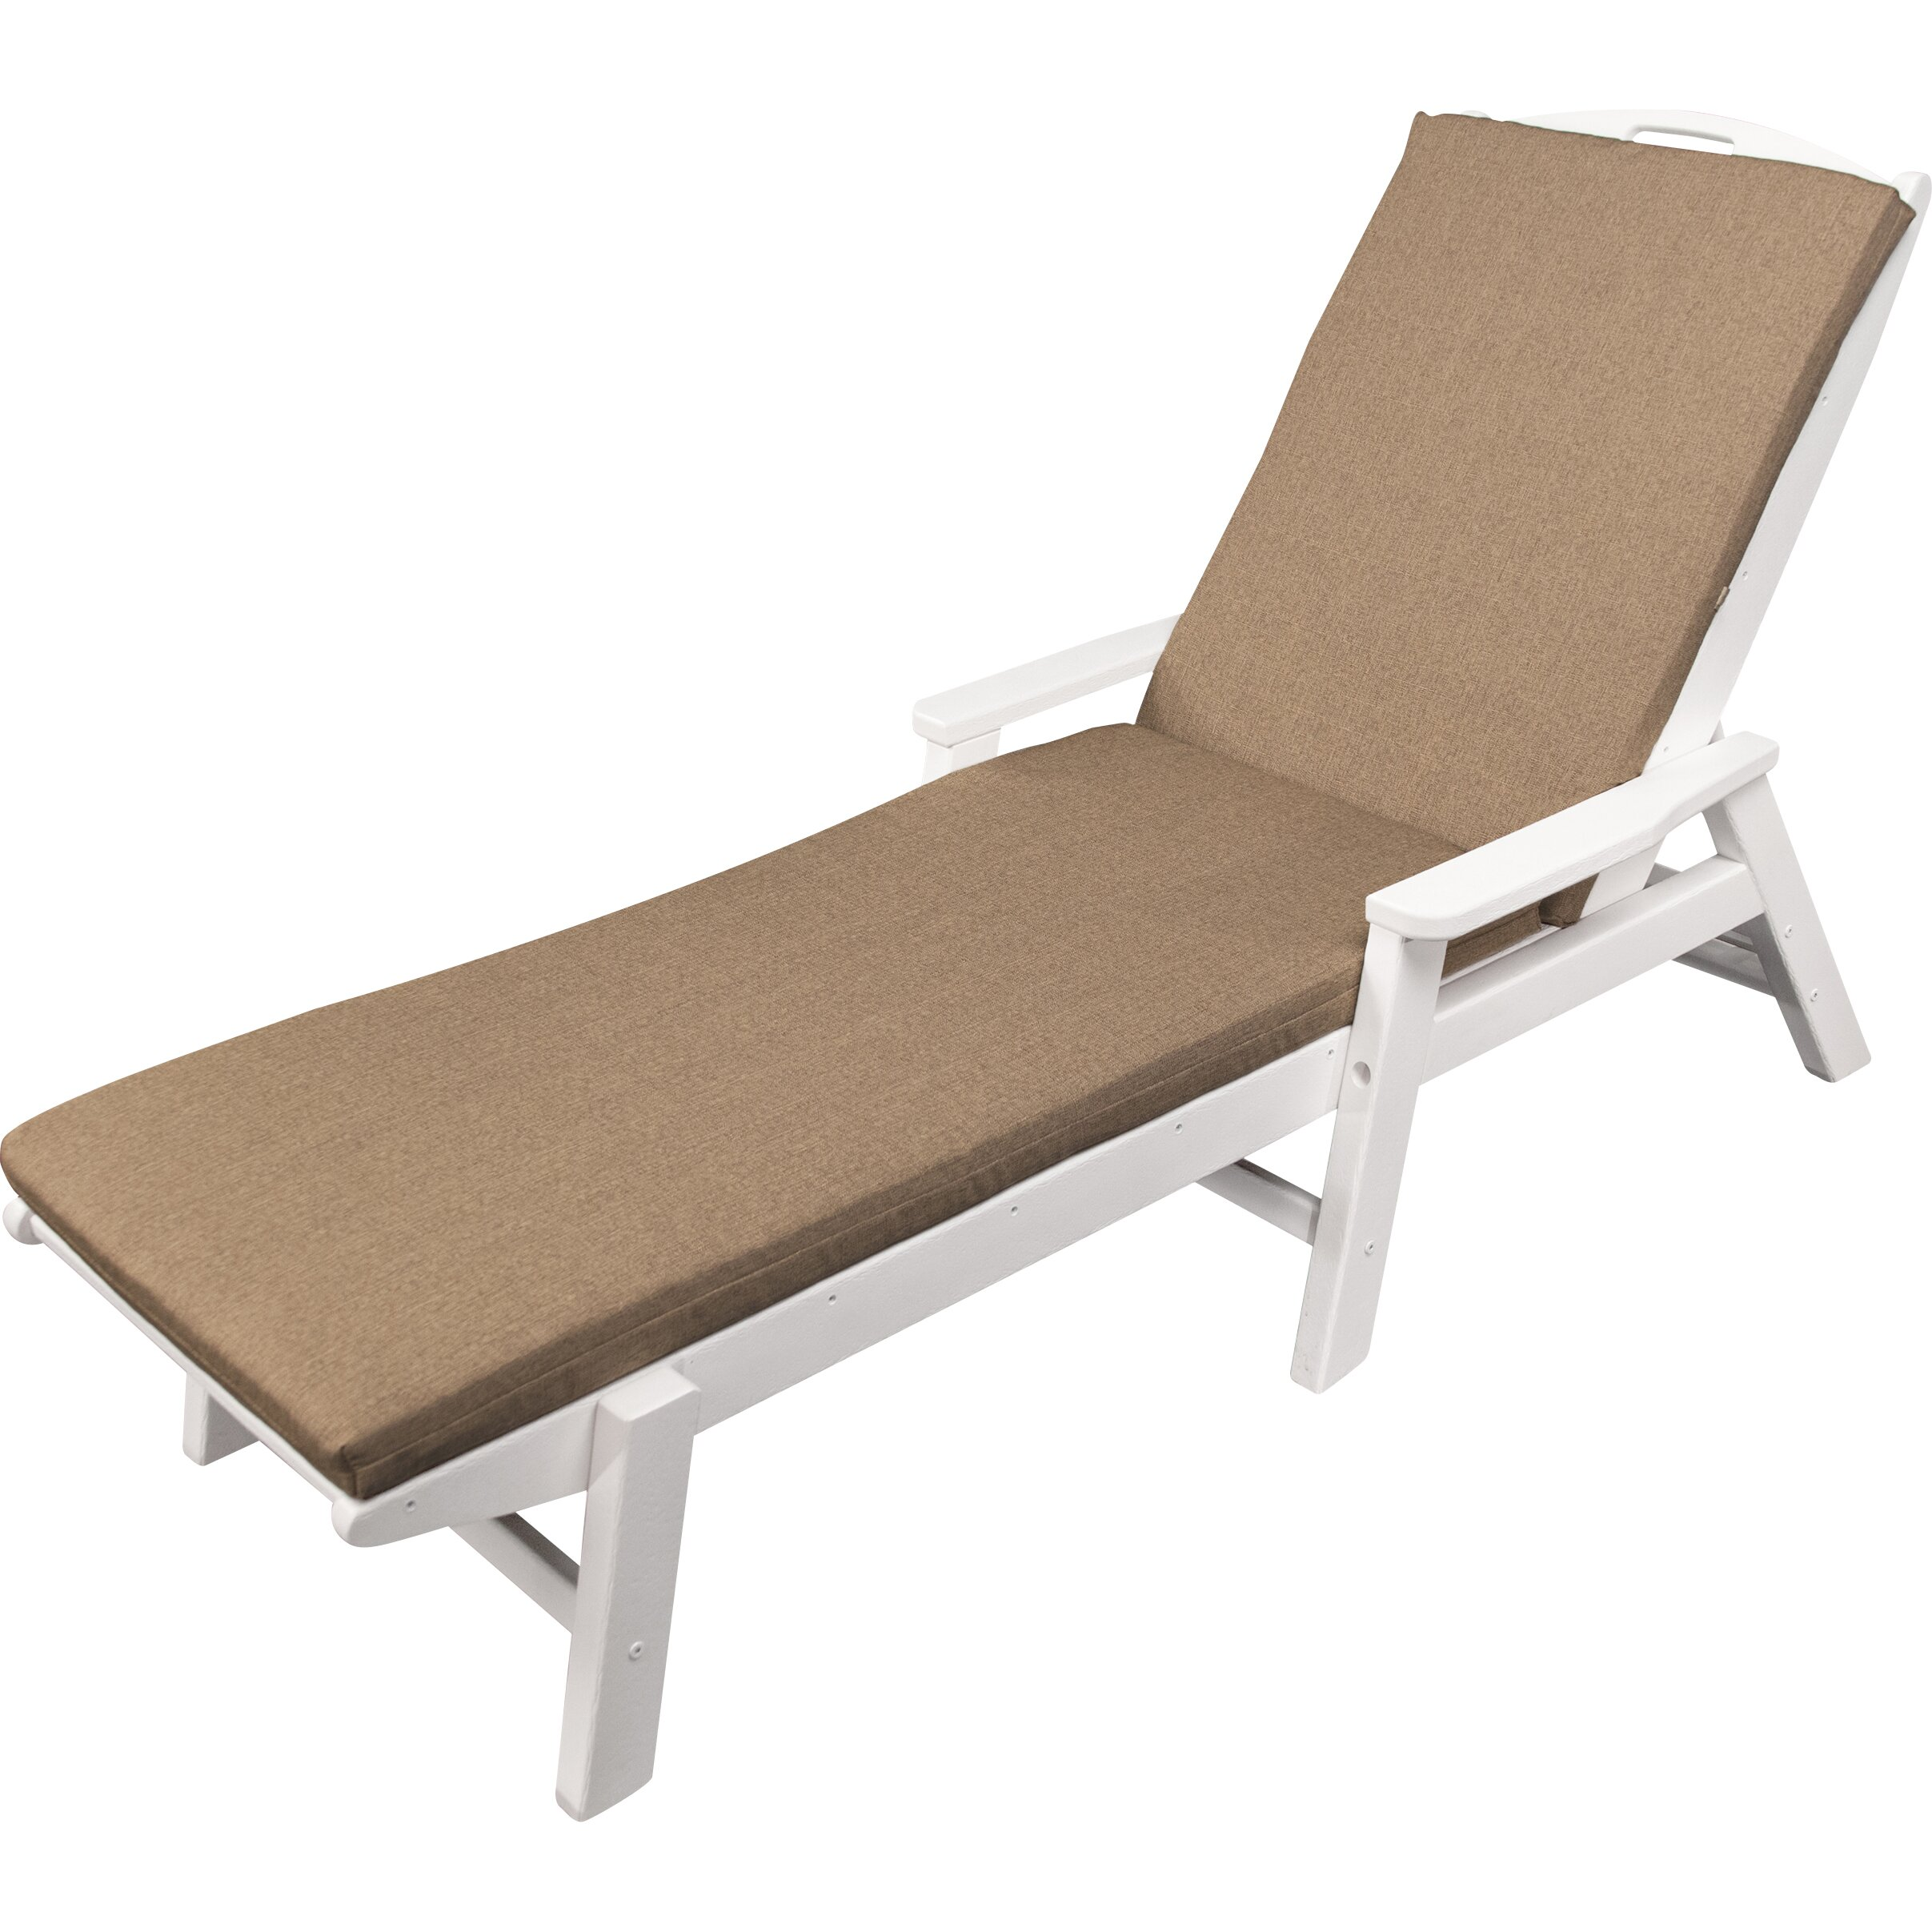 Ateeva outdoor sunbrella chaise lounge cushion reviews for Chaise longue cushions